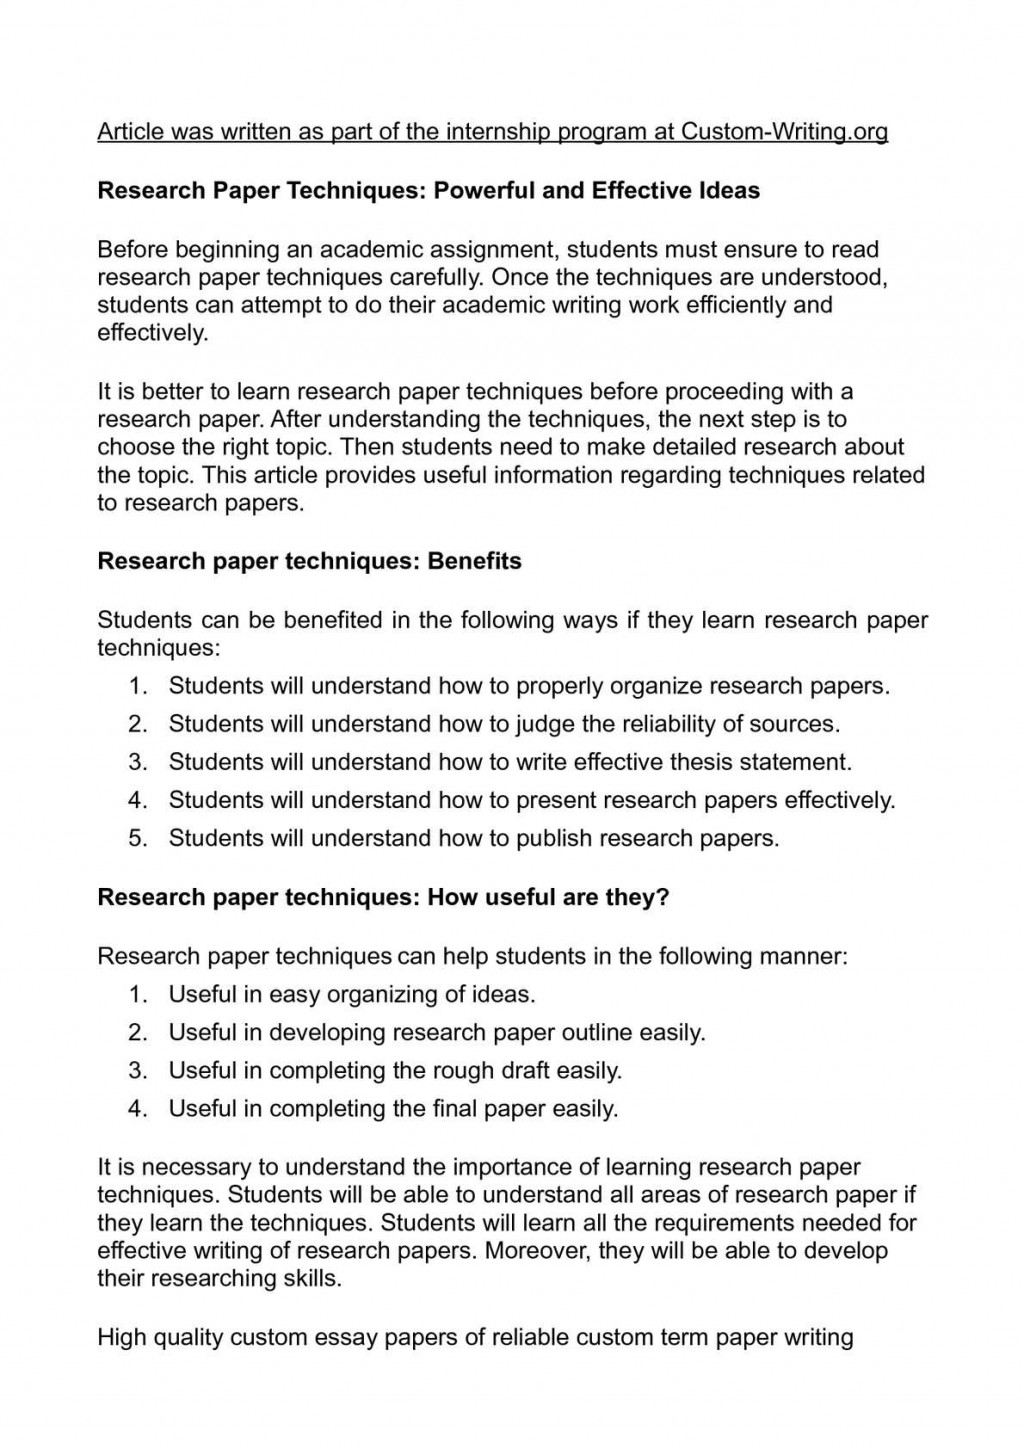 003 Ideas For Researchs P1 Archaicawful Research Papers High School Paper On Technology Healthcare Large